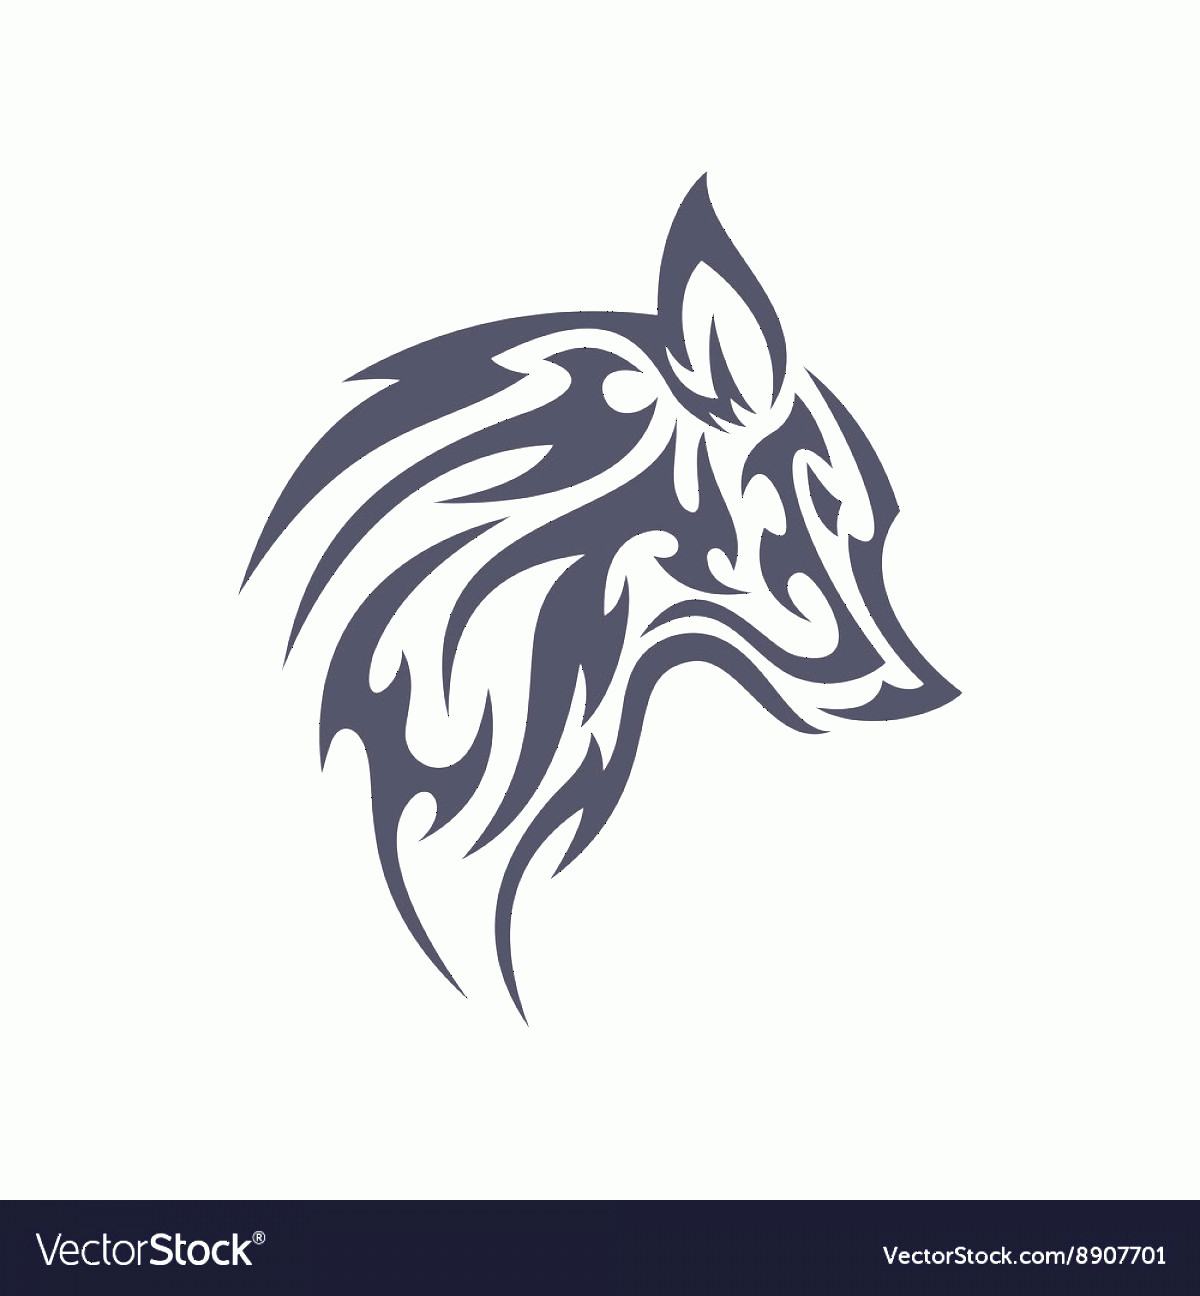 Wolf Vector Logo: Tattoo Wolf Animal Logo For Unique Modern Vector